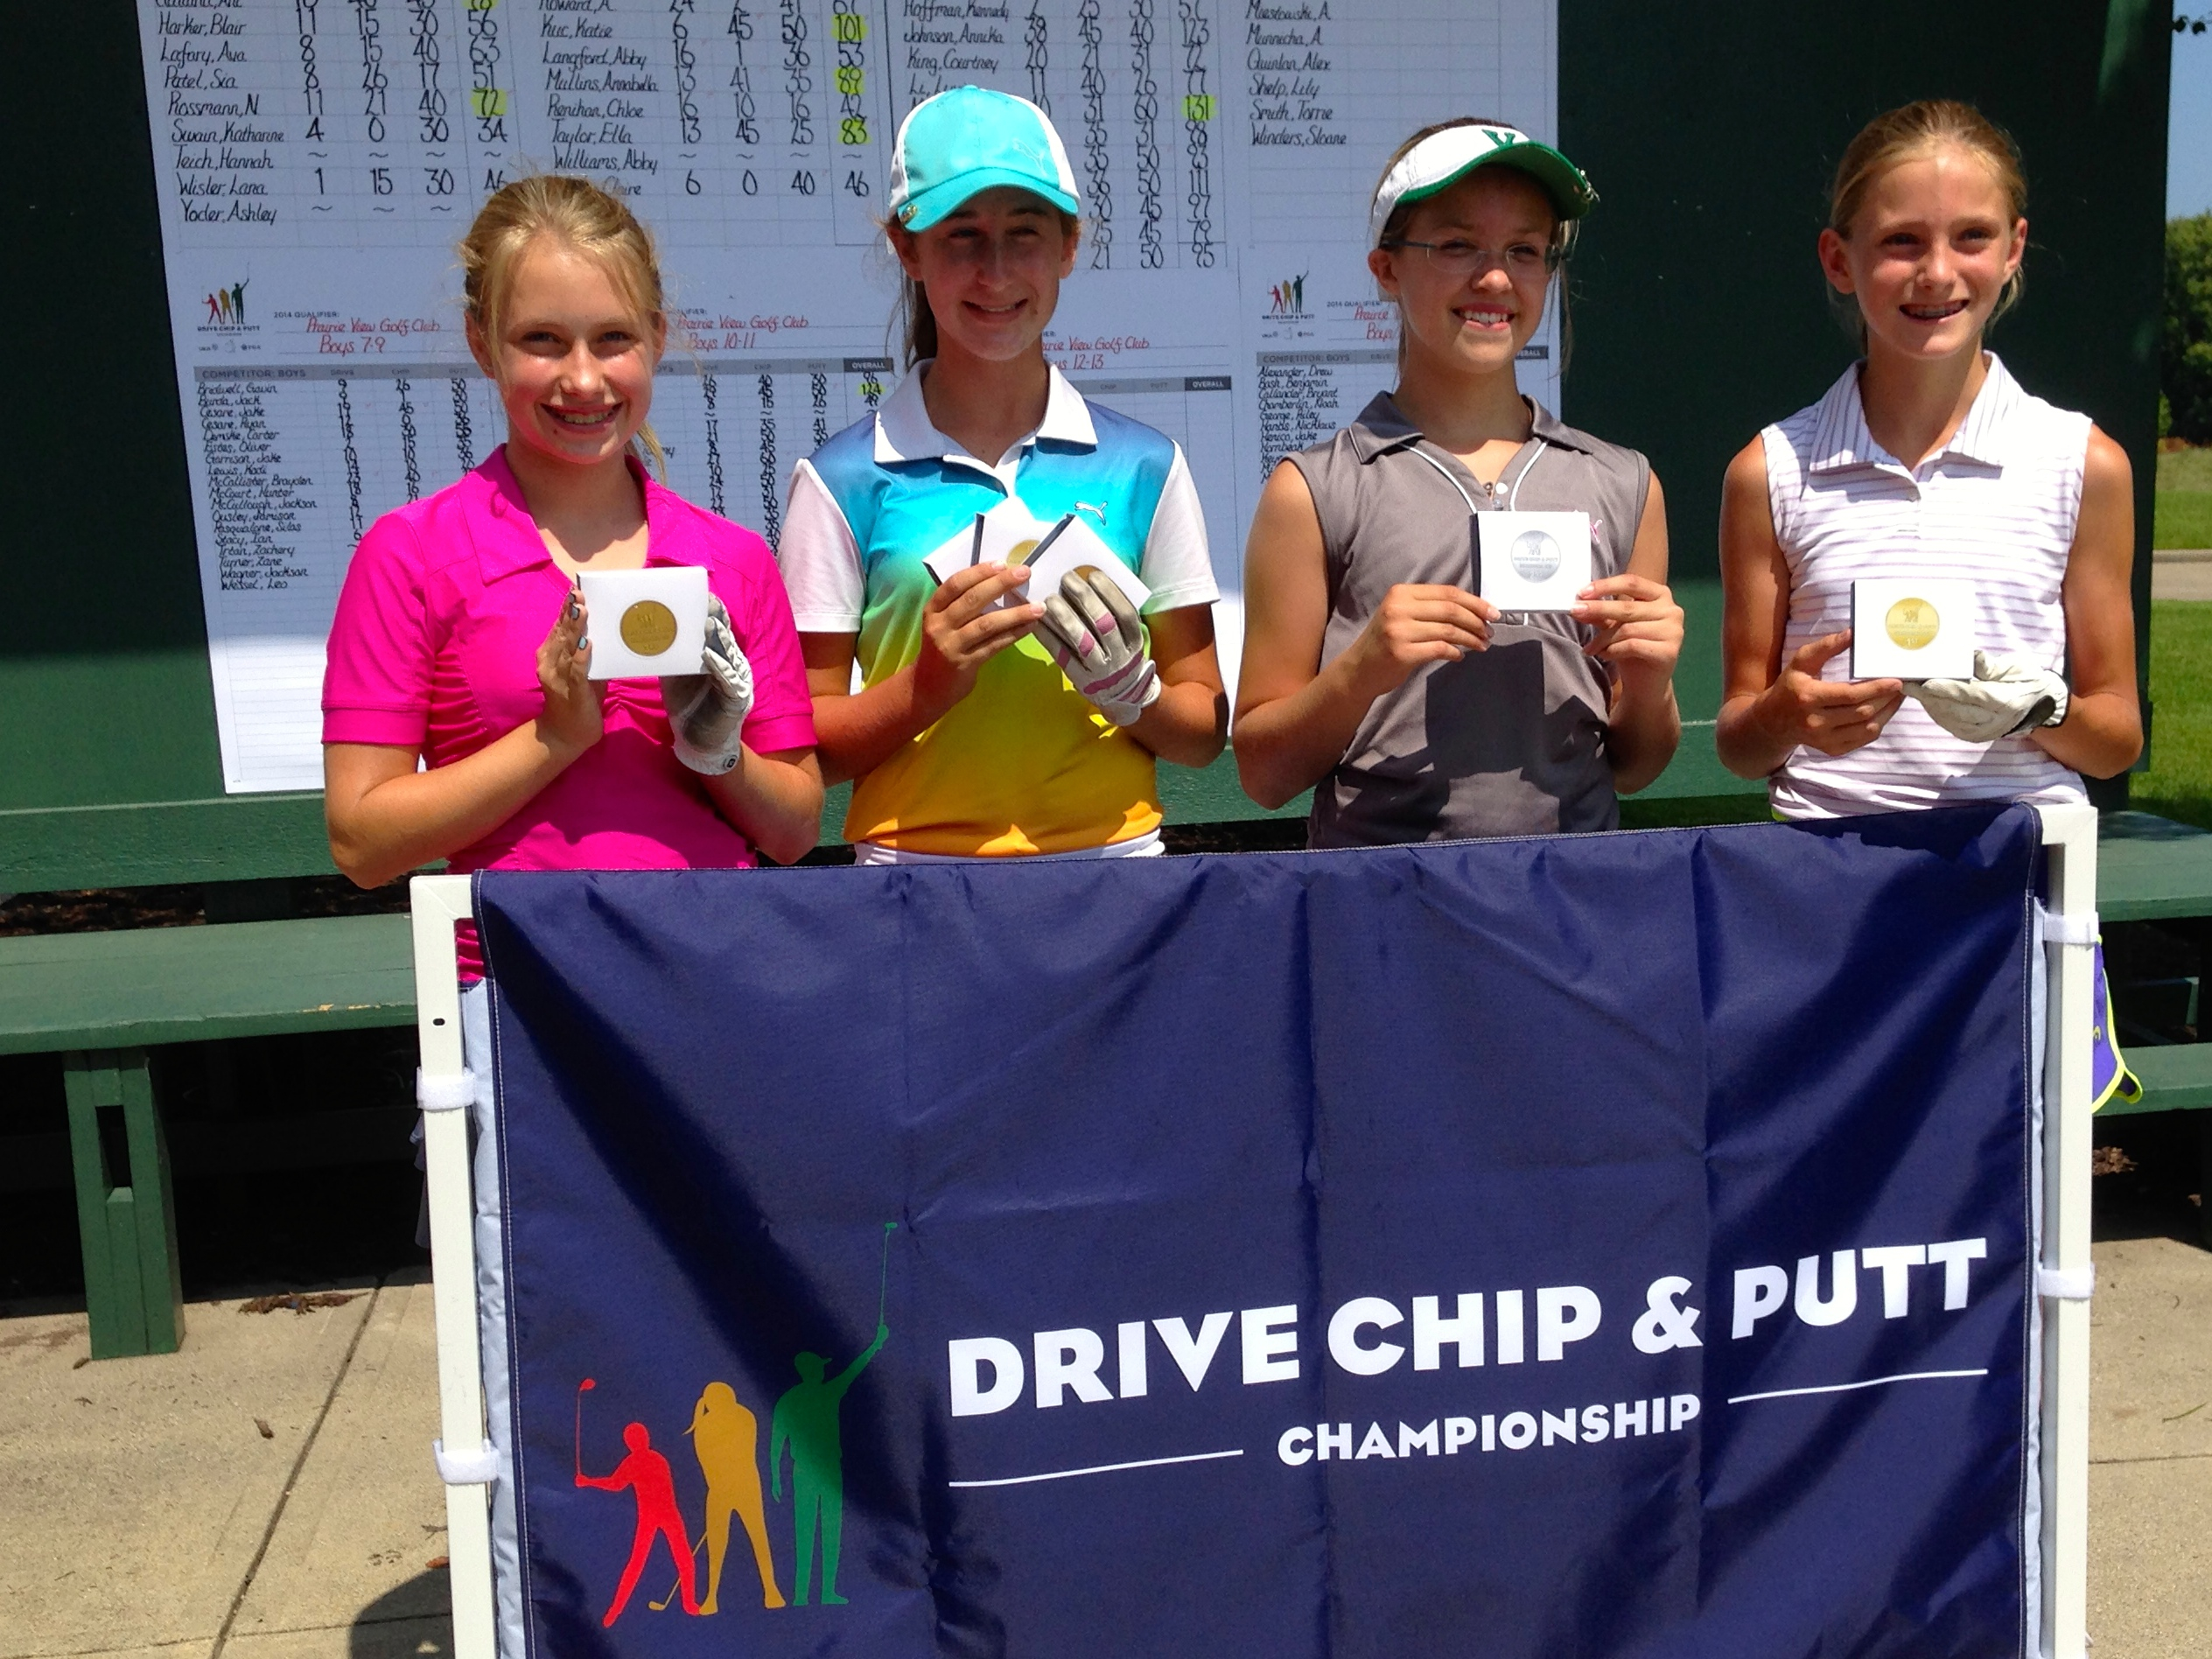 Local_Girls_Earn_10_Medals_in_Drive__Chi-1